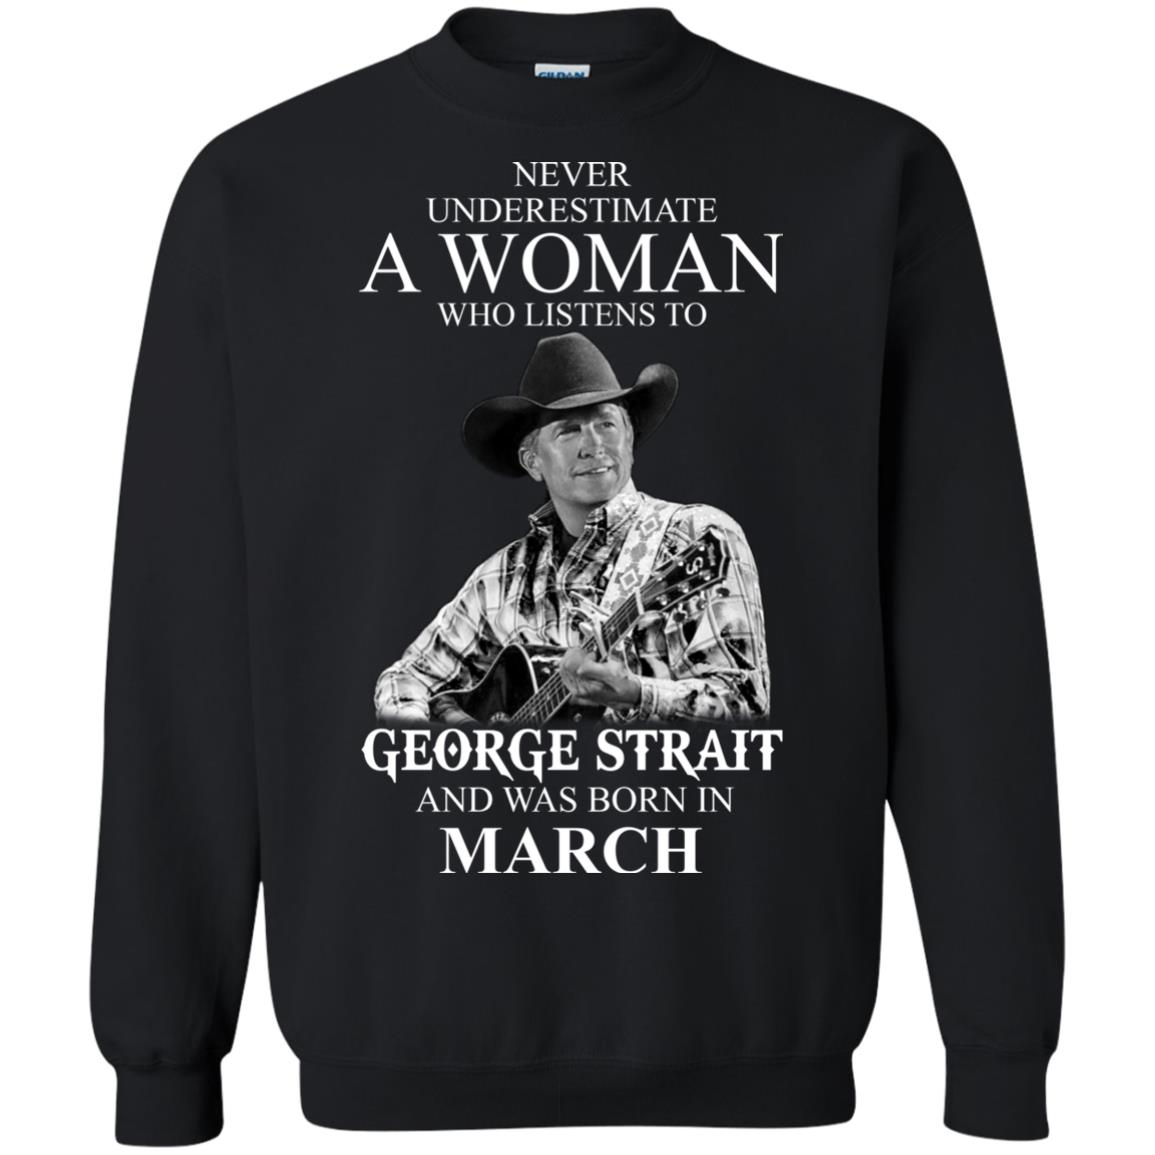 image 440 - Never Underestimate A Woman Who Listens To George Strait And Was Born In March shirt